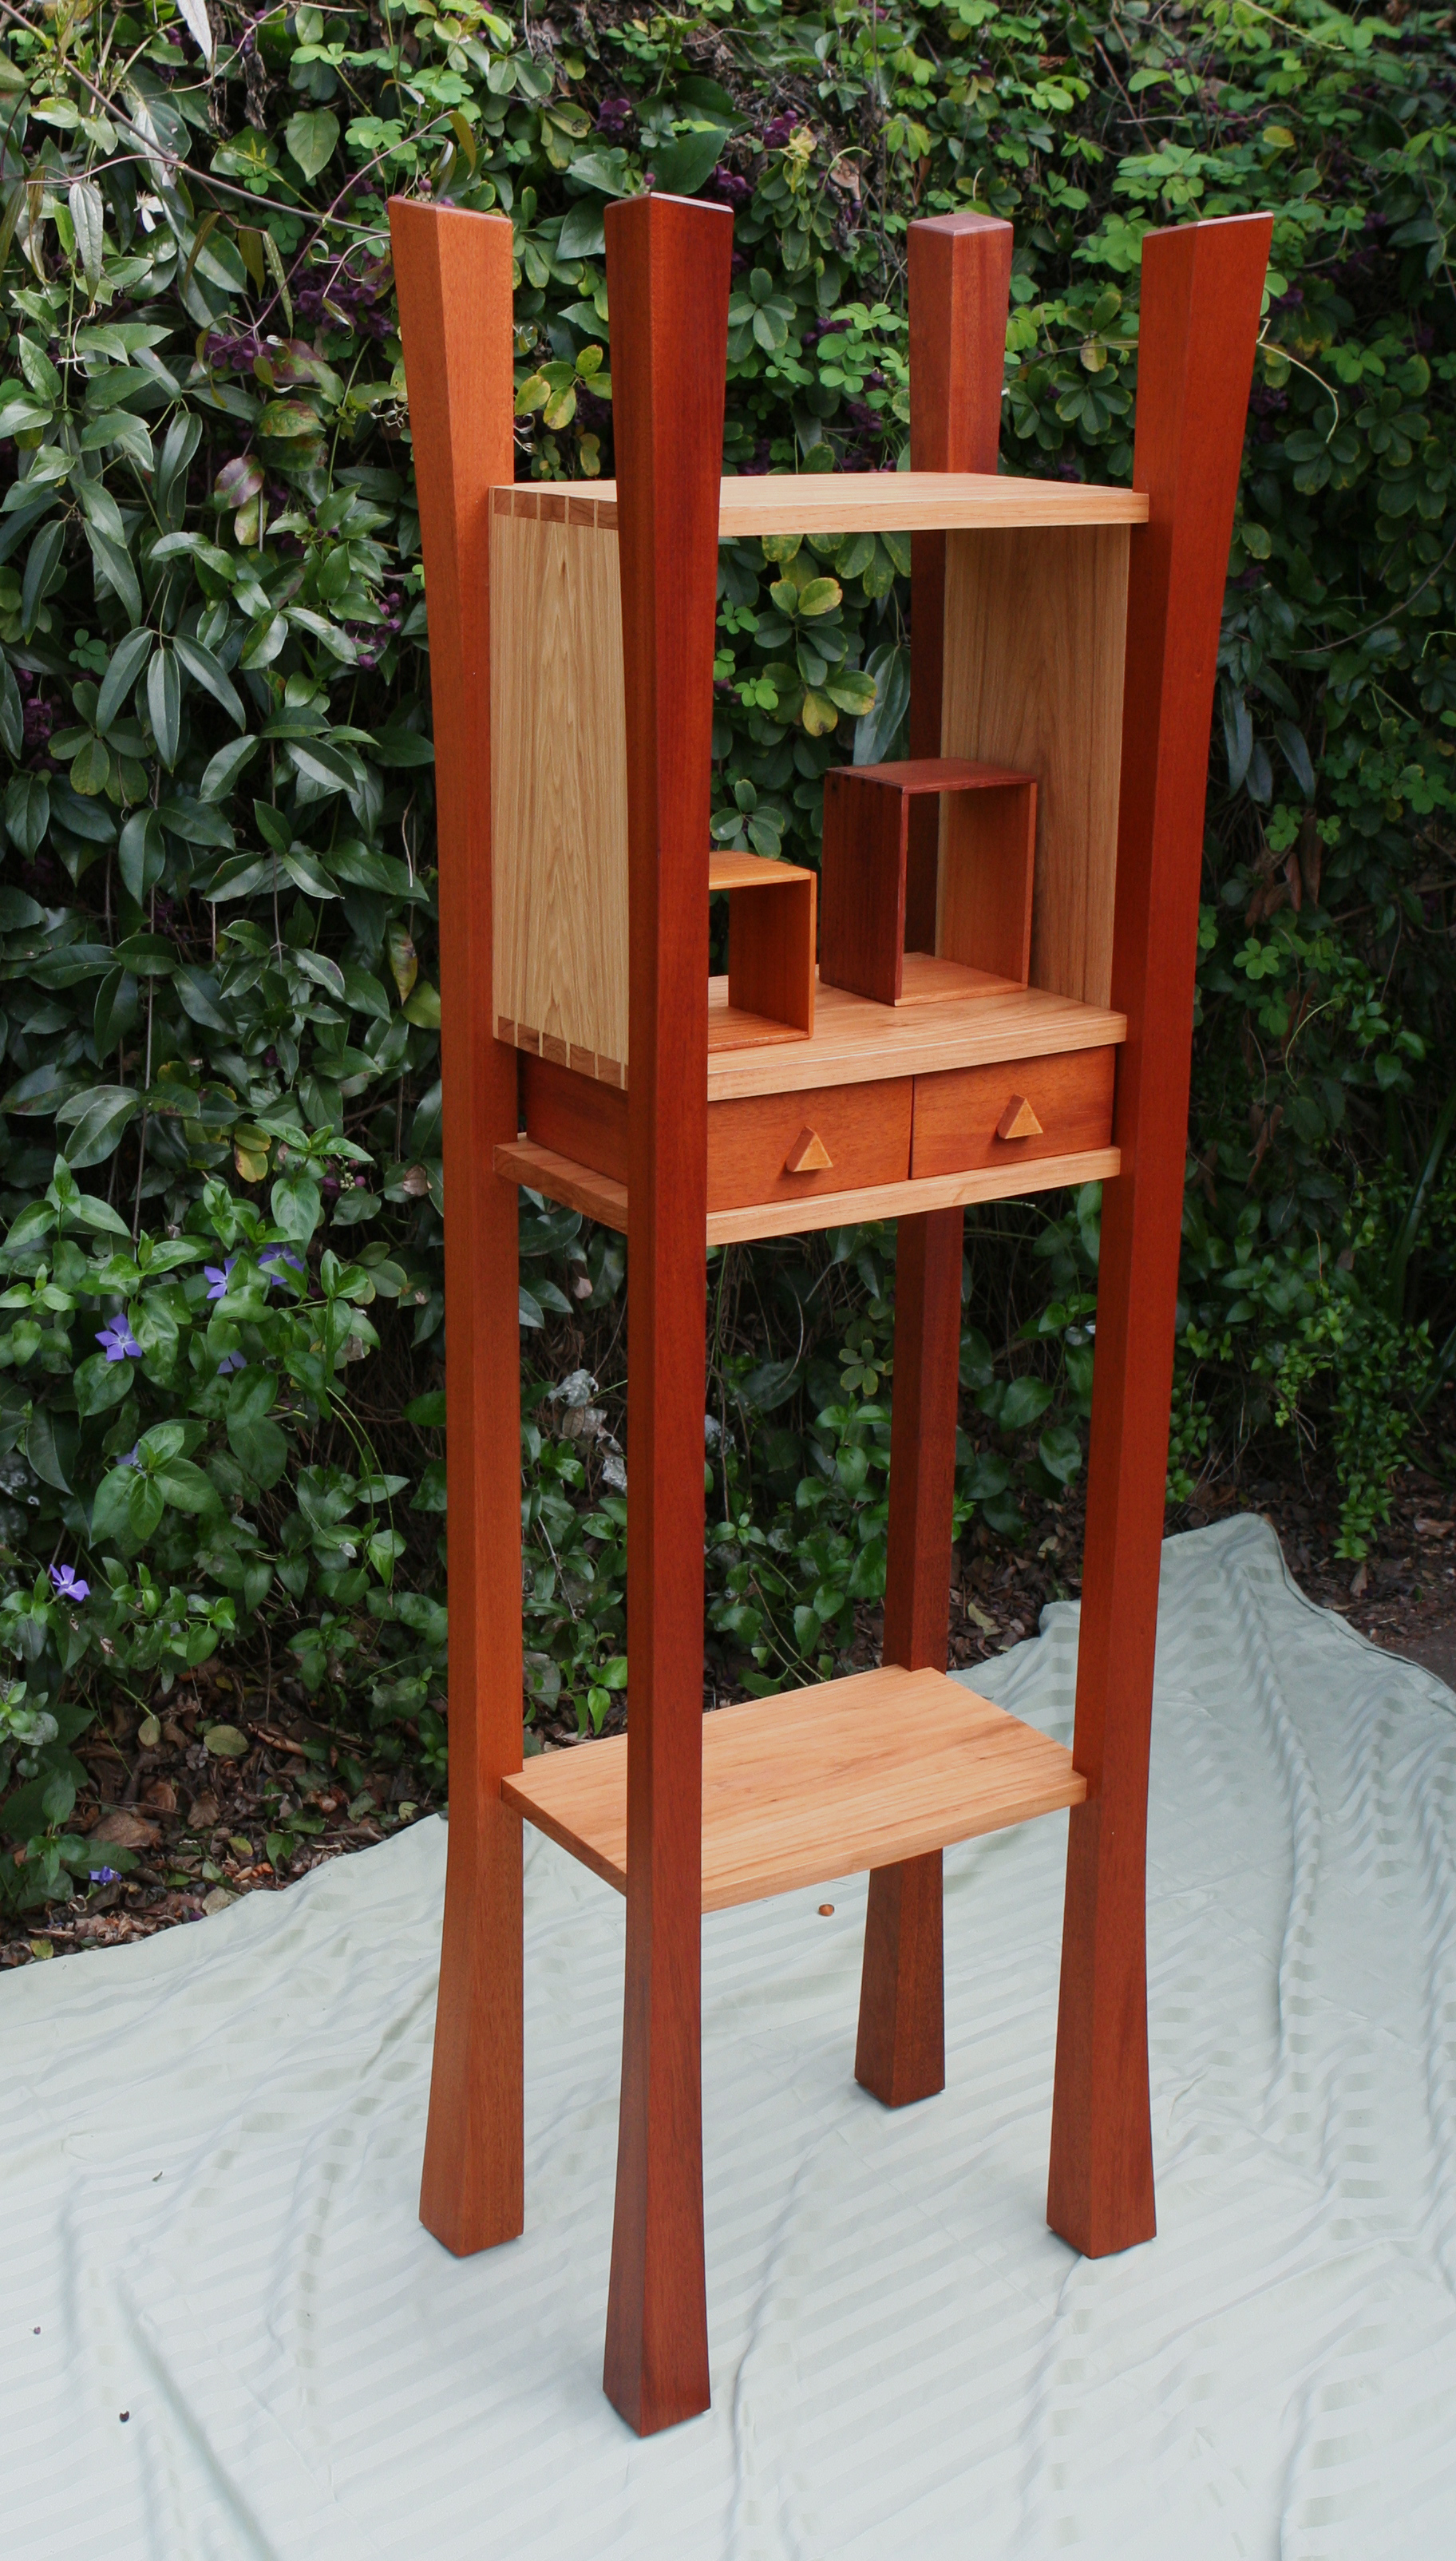 A display stand of Mahogany and Hickory